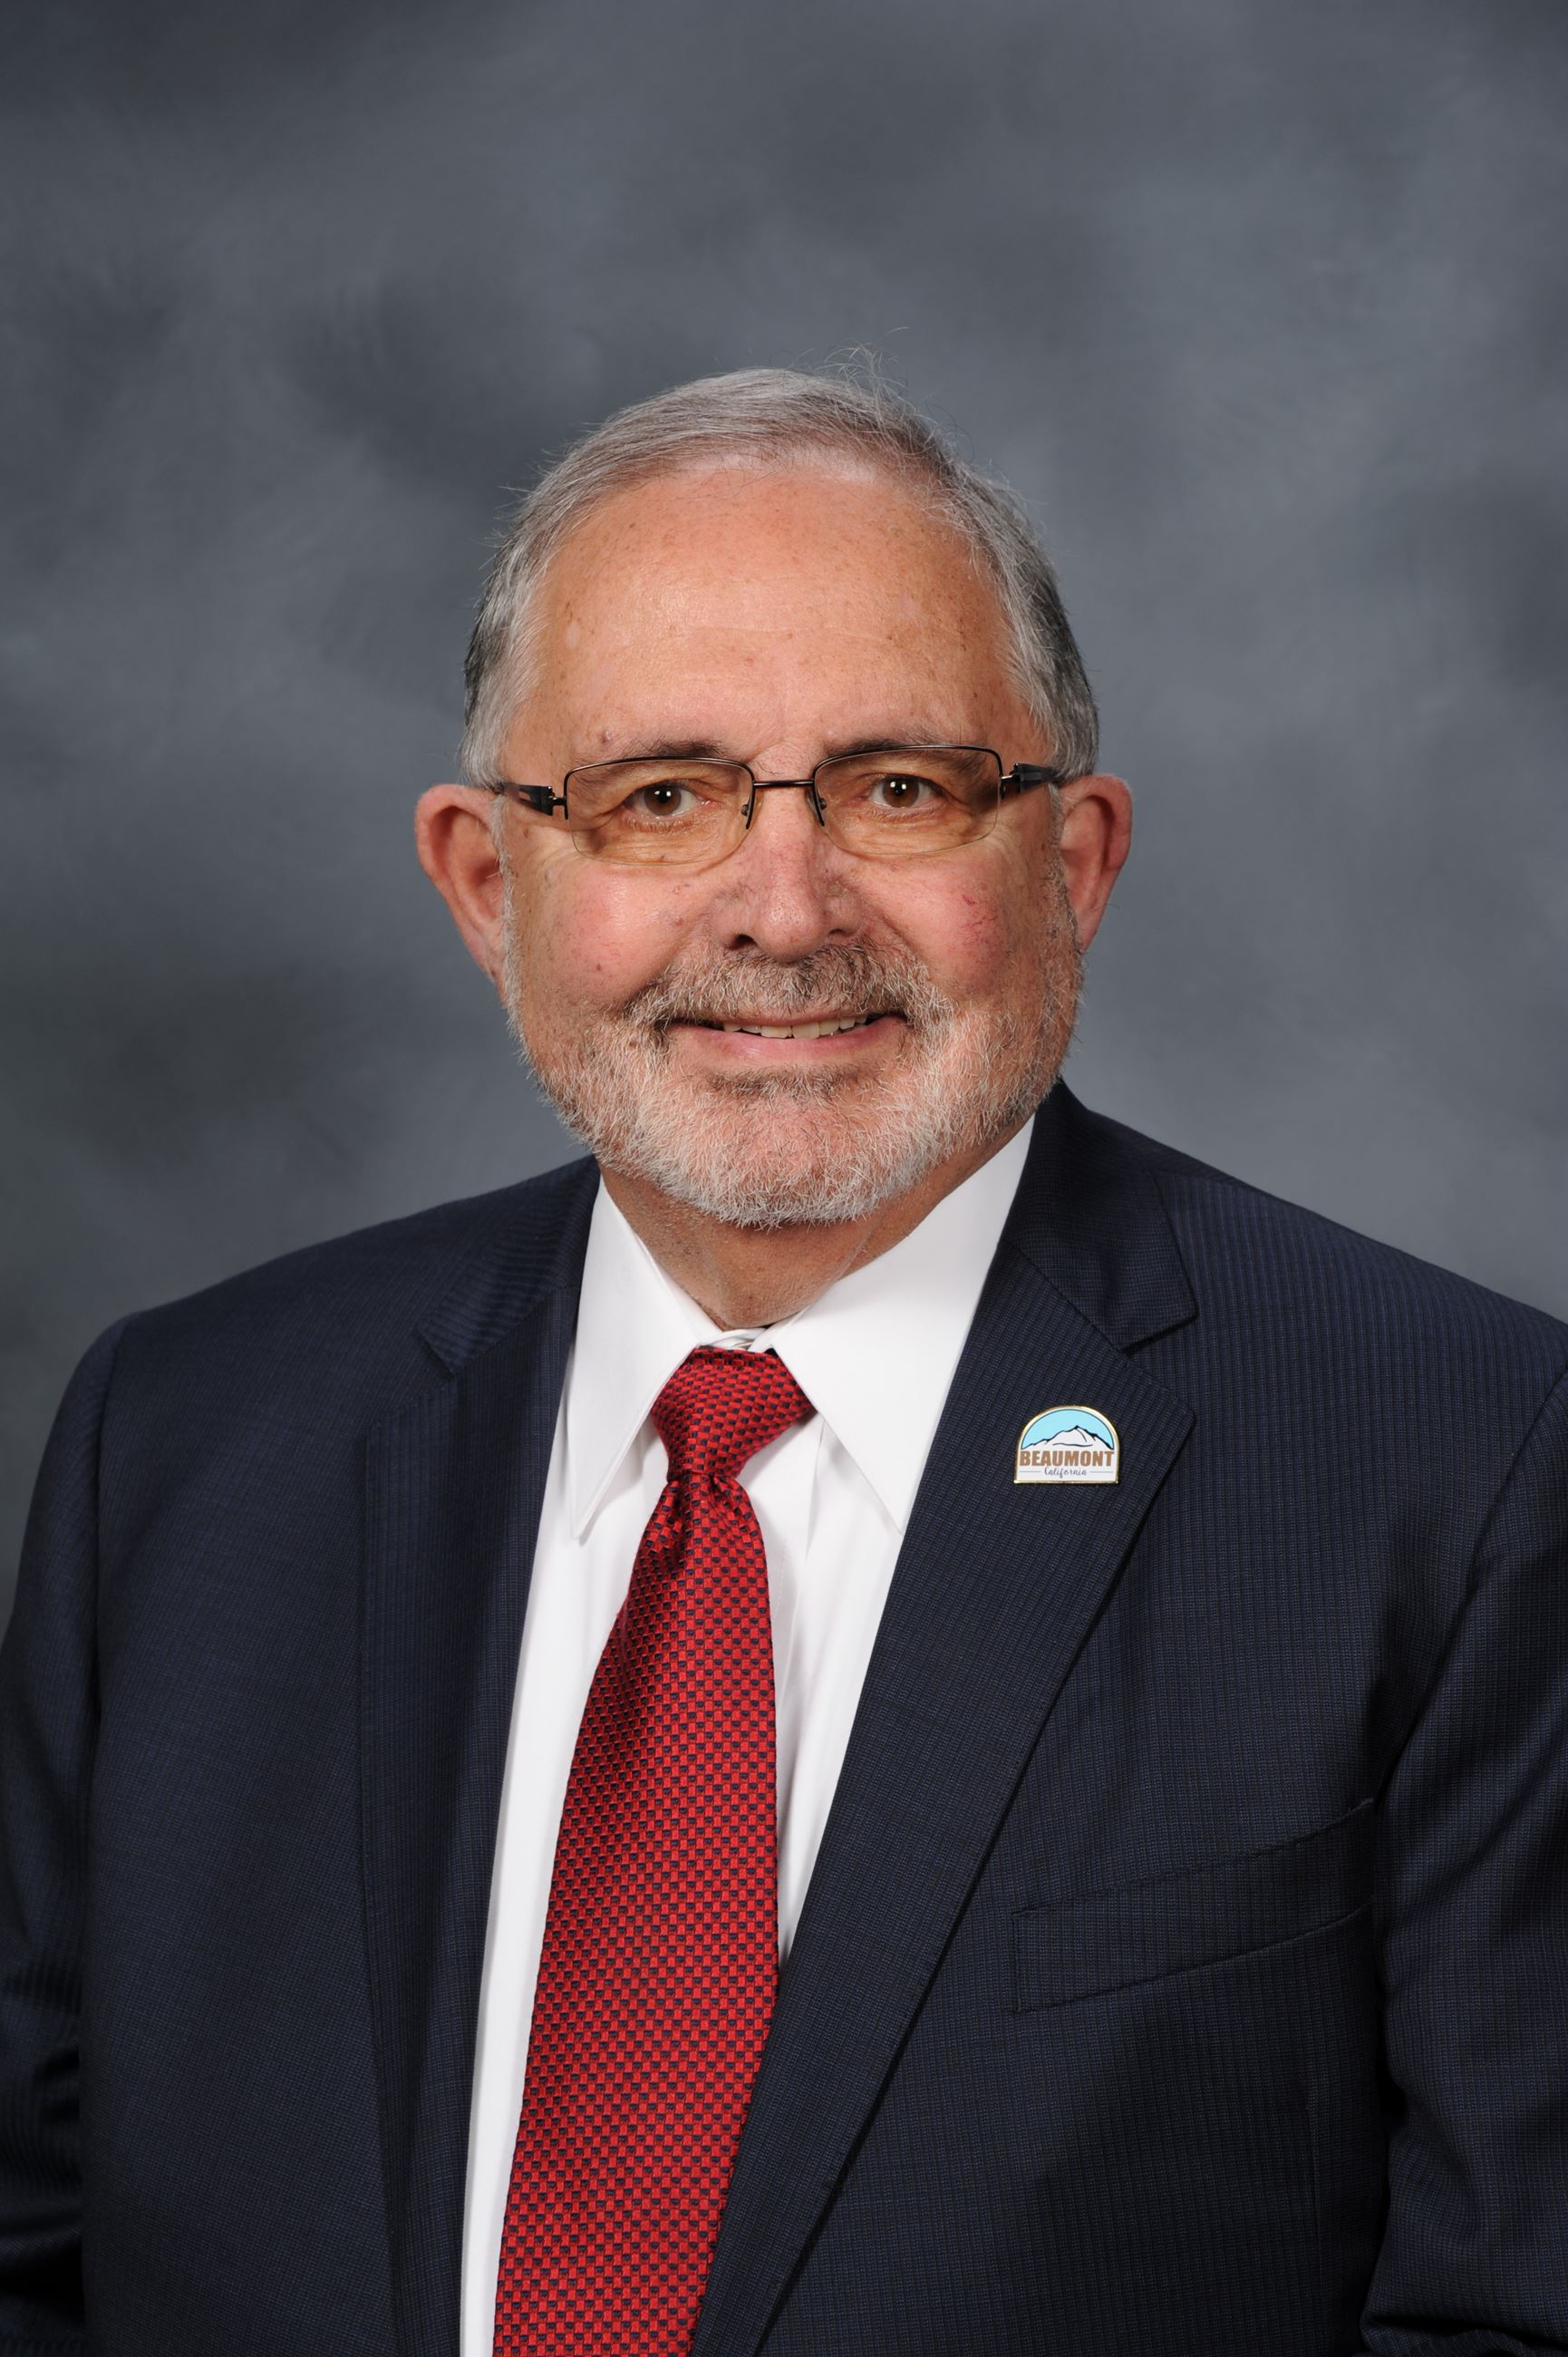 Photo of City Clerk Steven Mehlman